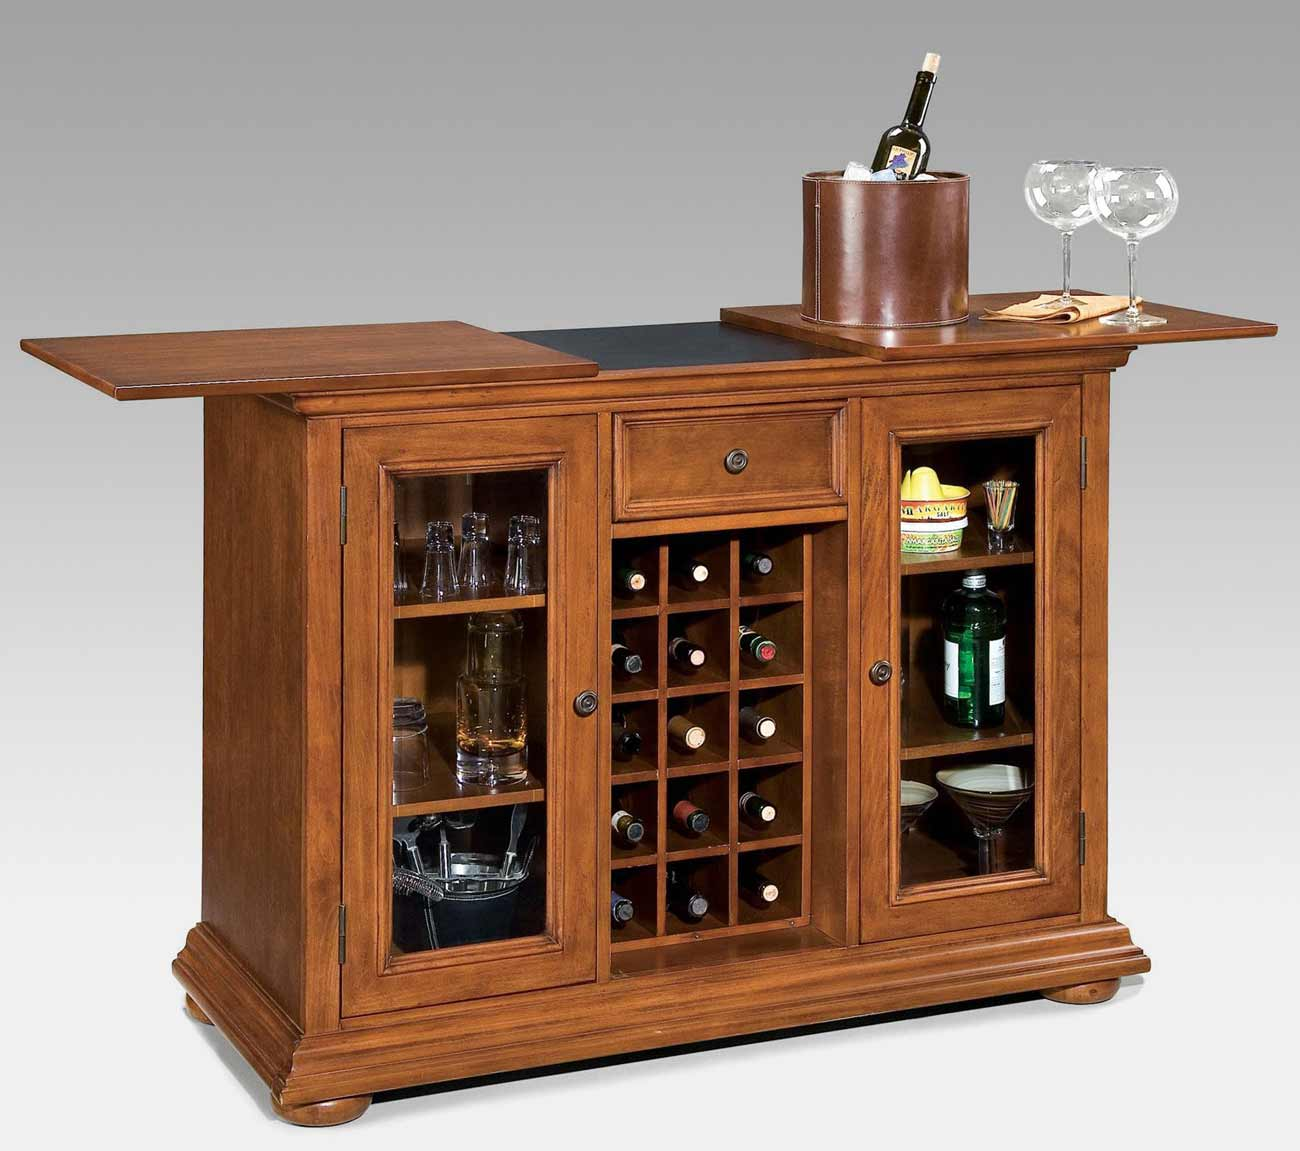 Bar Furniture Home: Drinks Cabinets On Pinterest